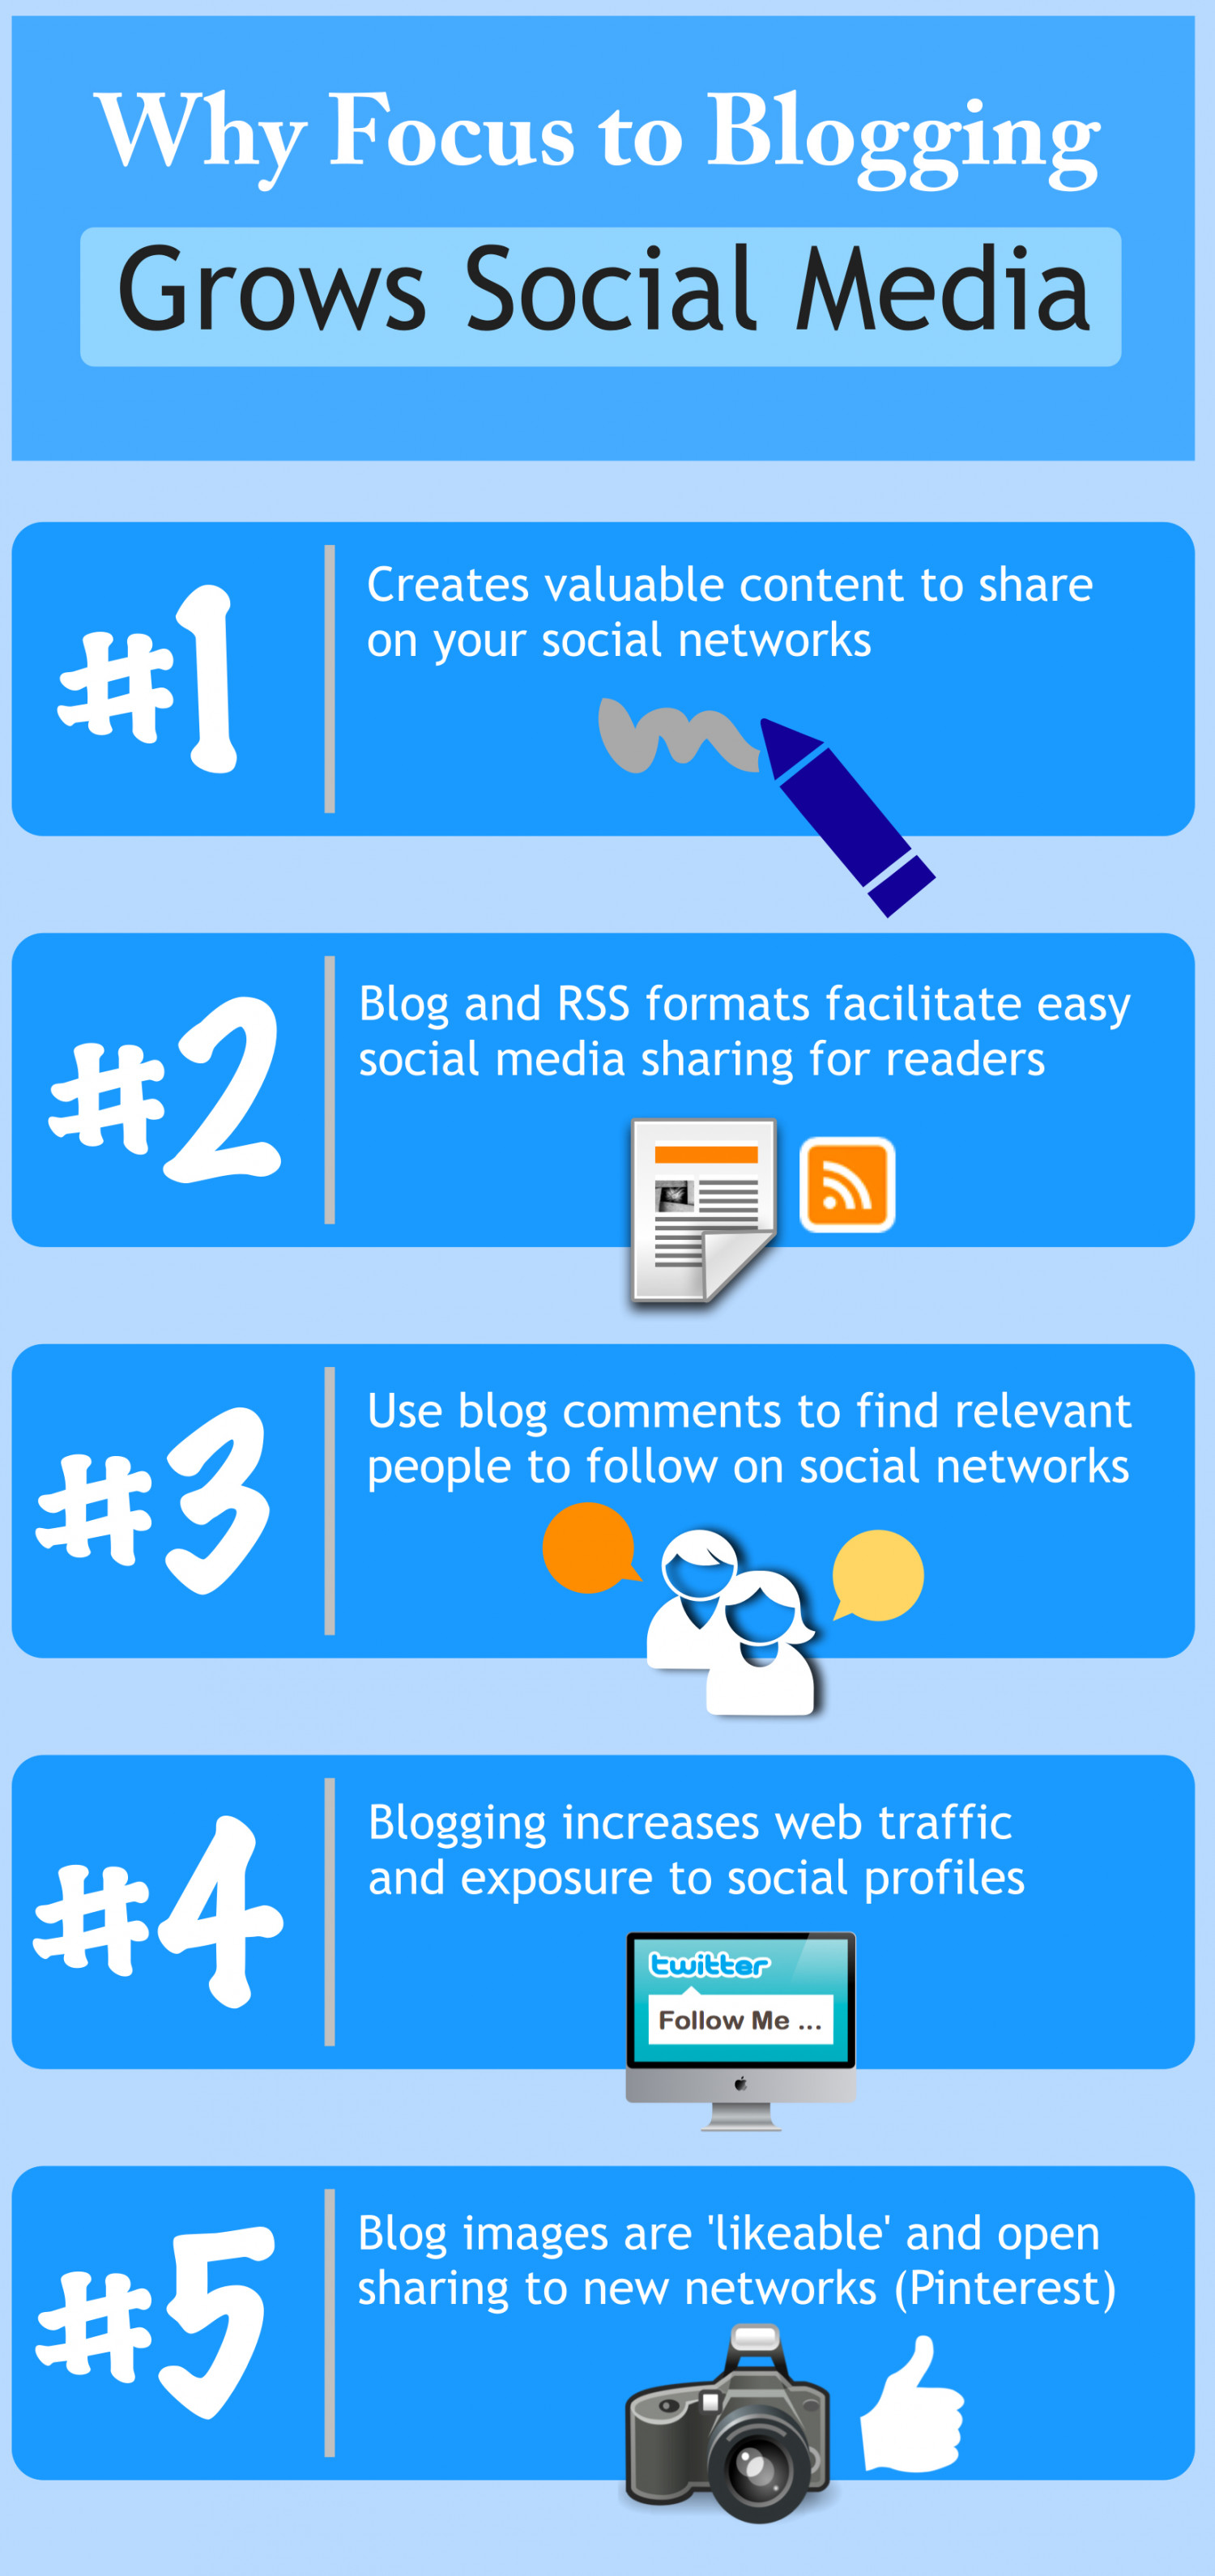 Why we focus to blogging Infographic